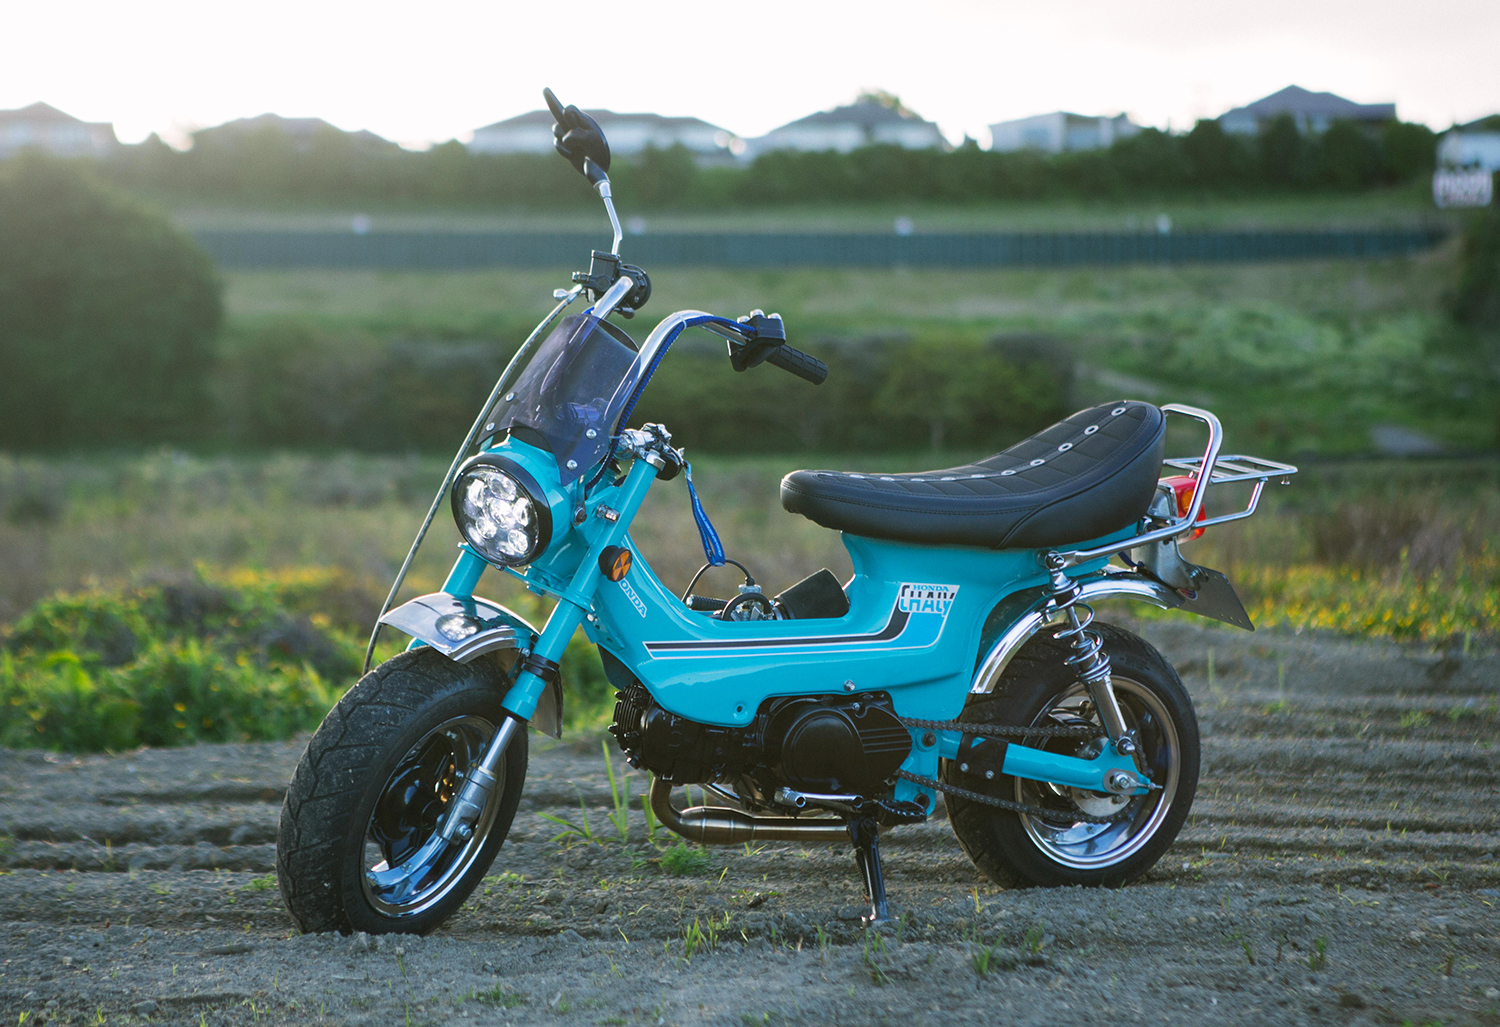 IT'S A SMALL WORLD: 1972 Honda Chaly